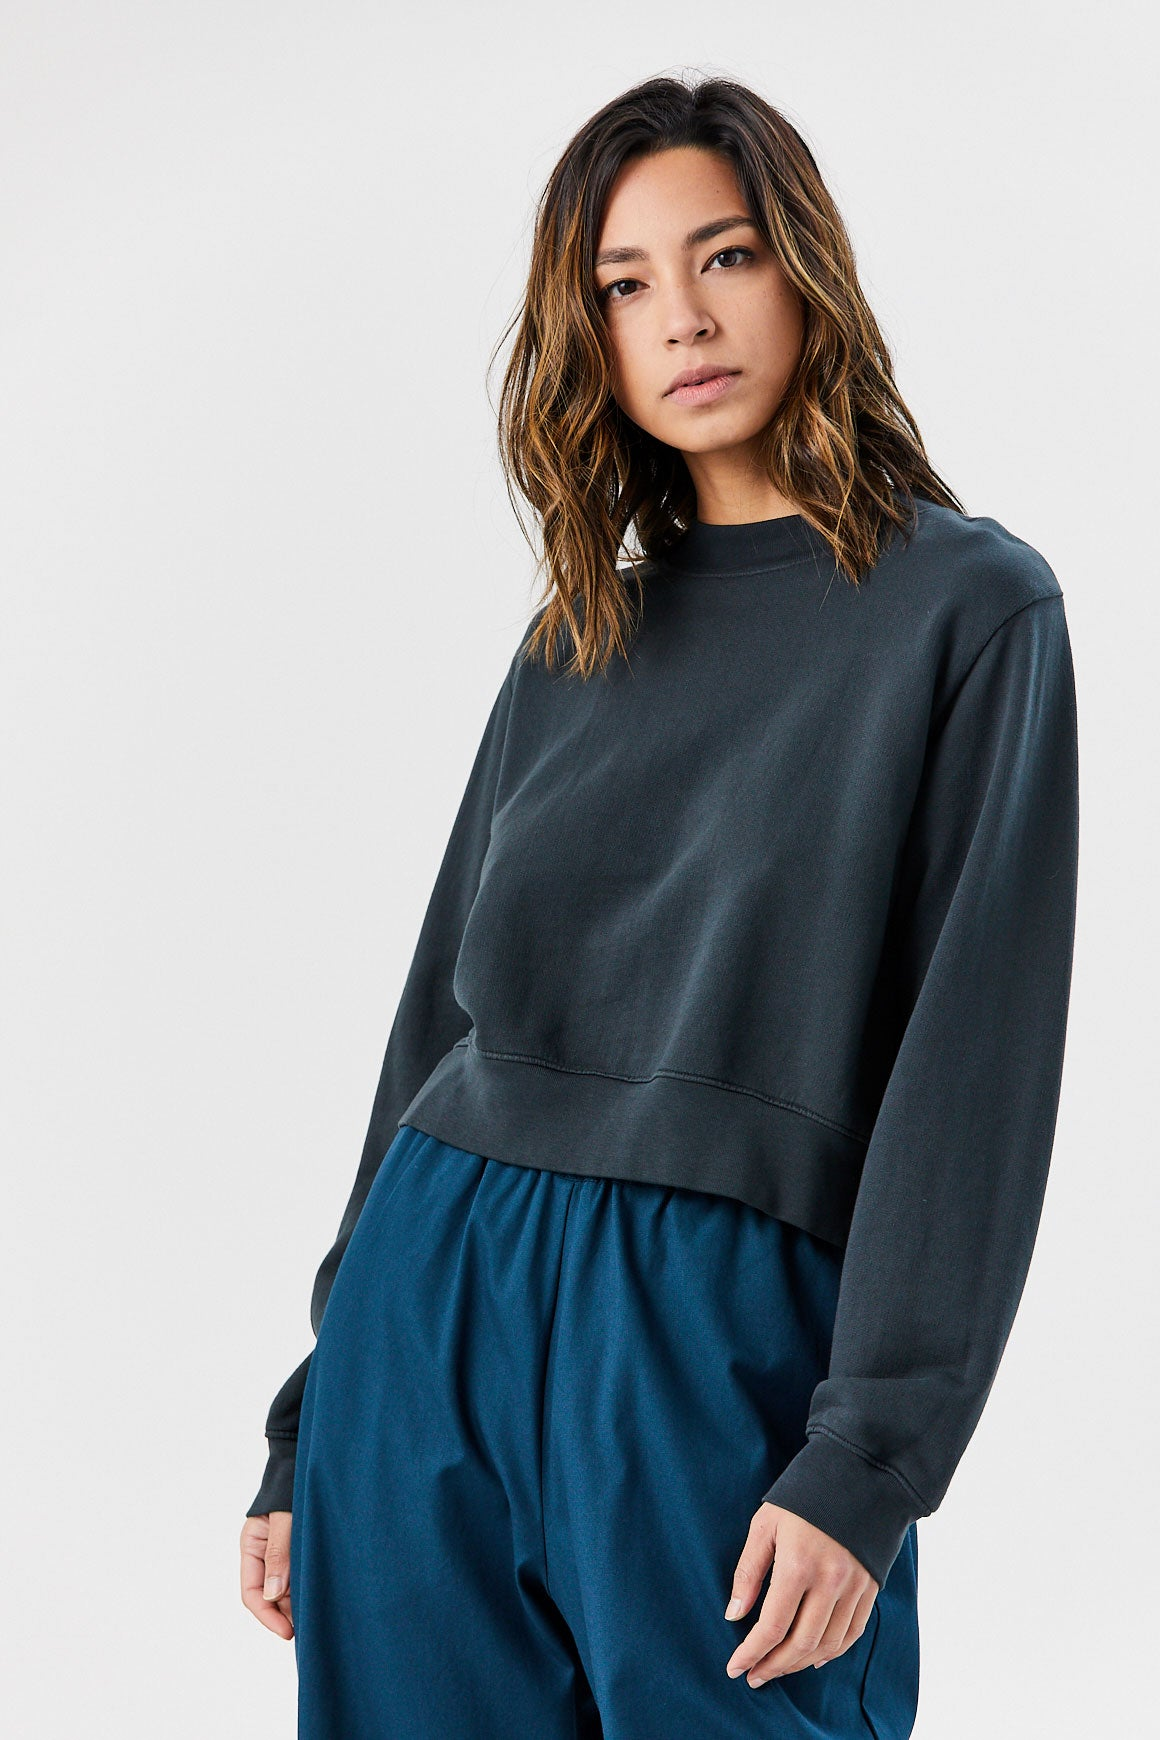 COTTON CITIZEN - Milan Cropped Crew Sweatshirt, Oasis